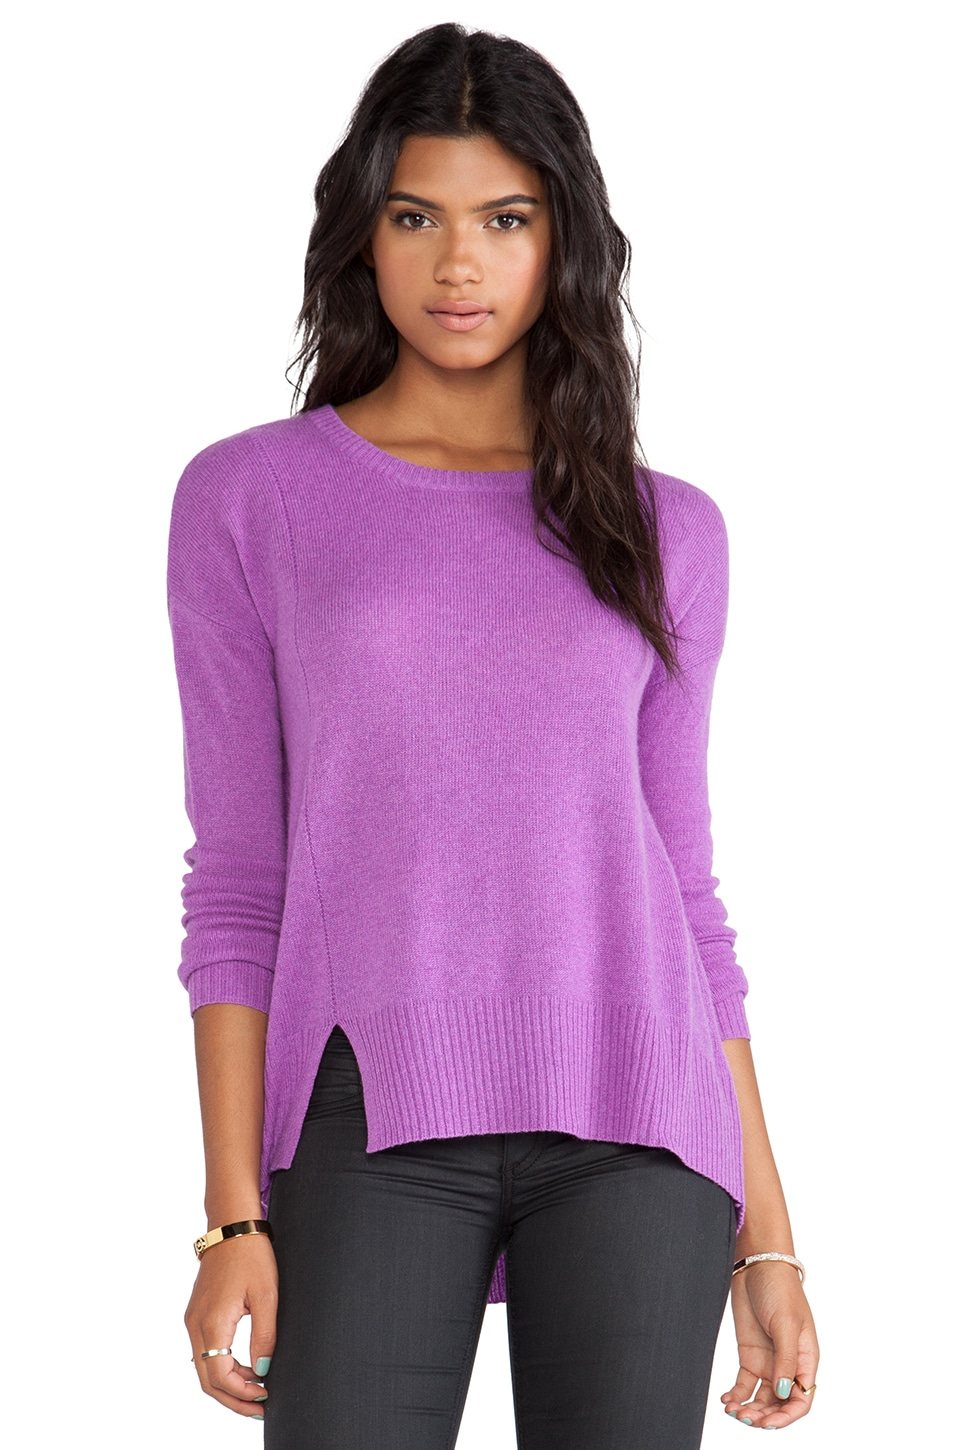 White + Warren Notch Hem Crewneck Sweater in Orchid Heather